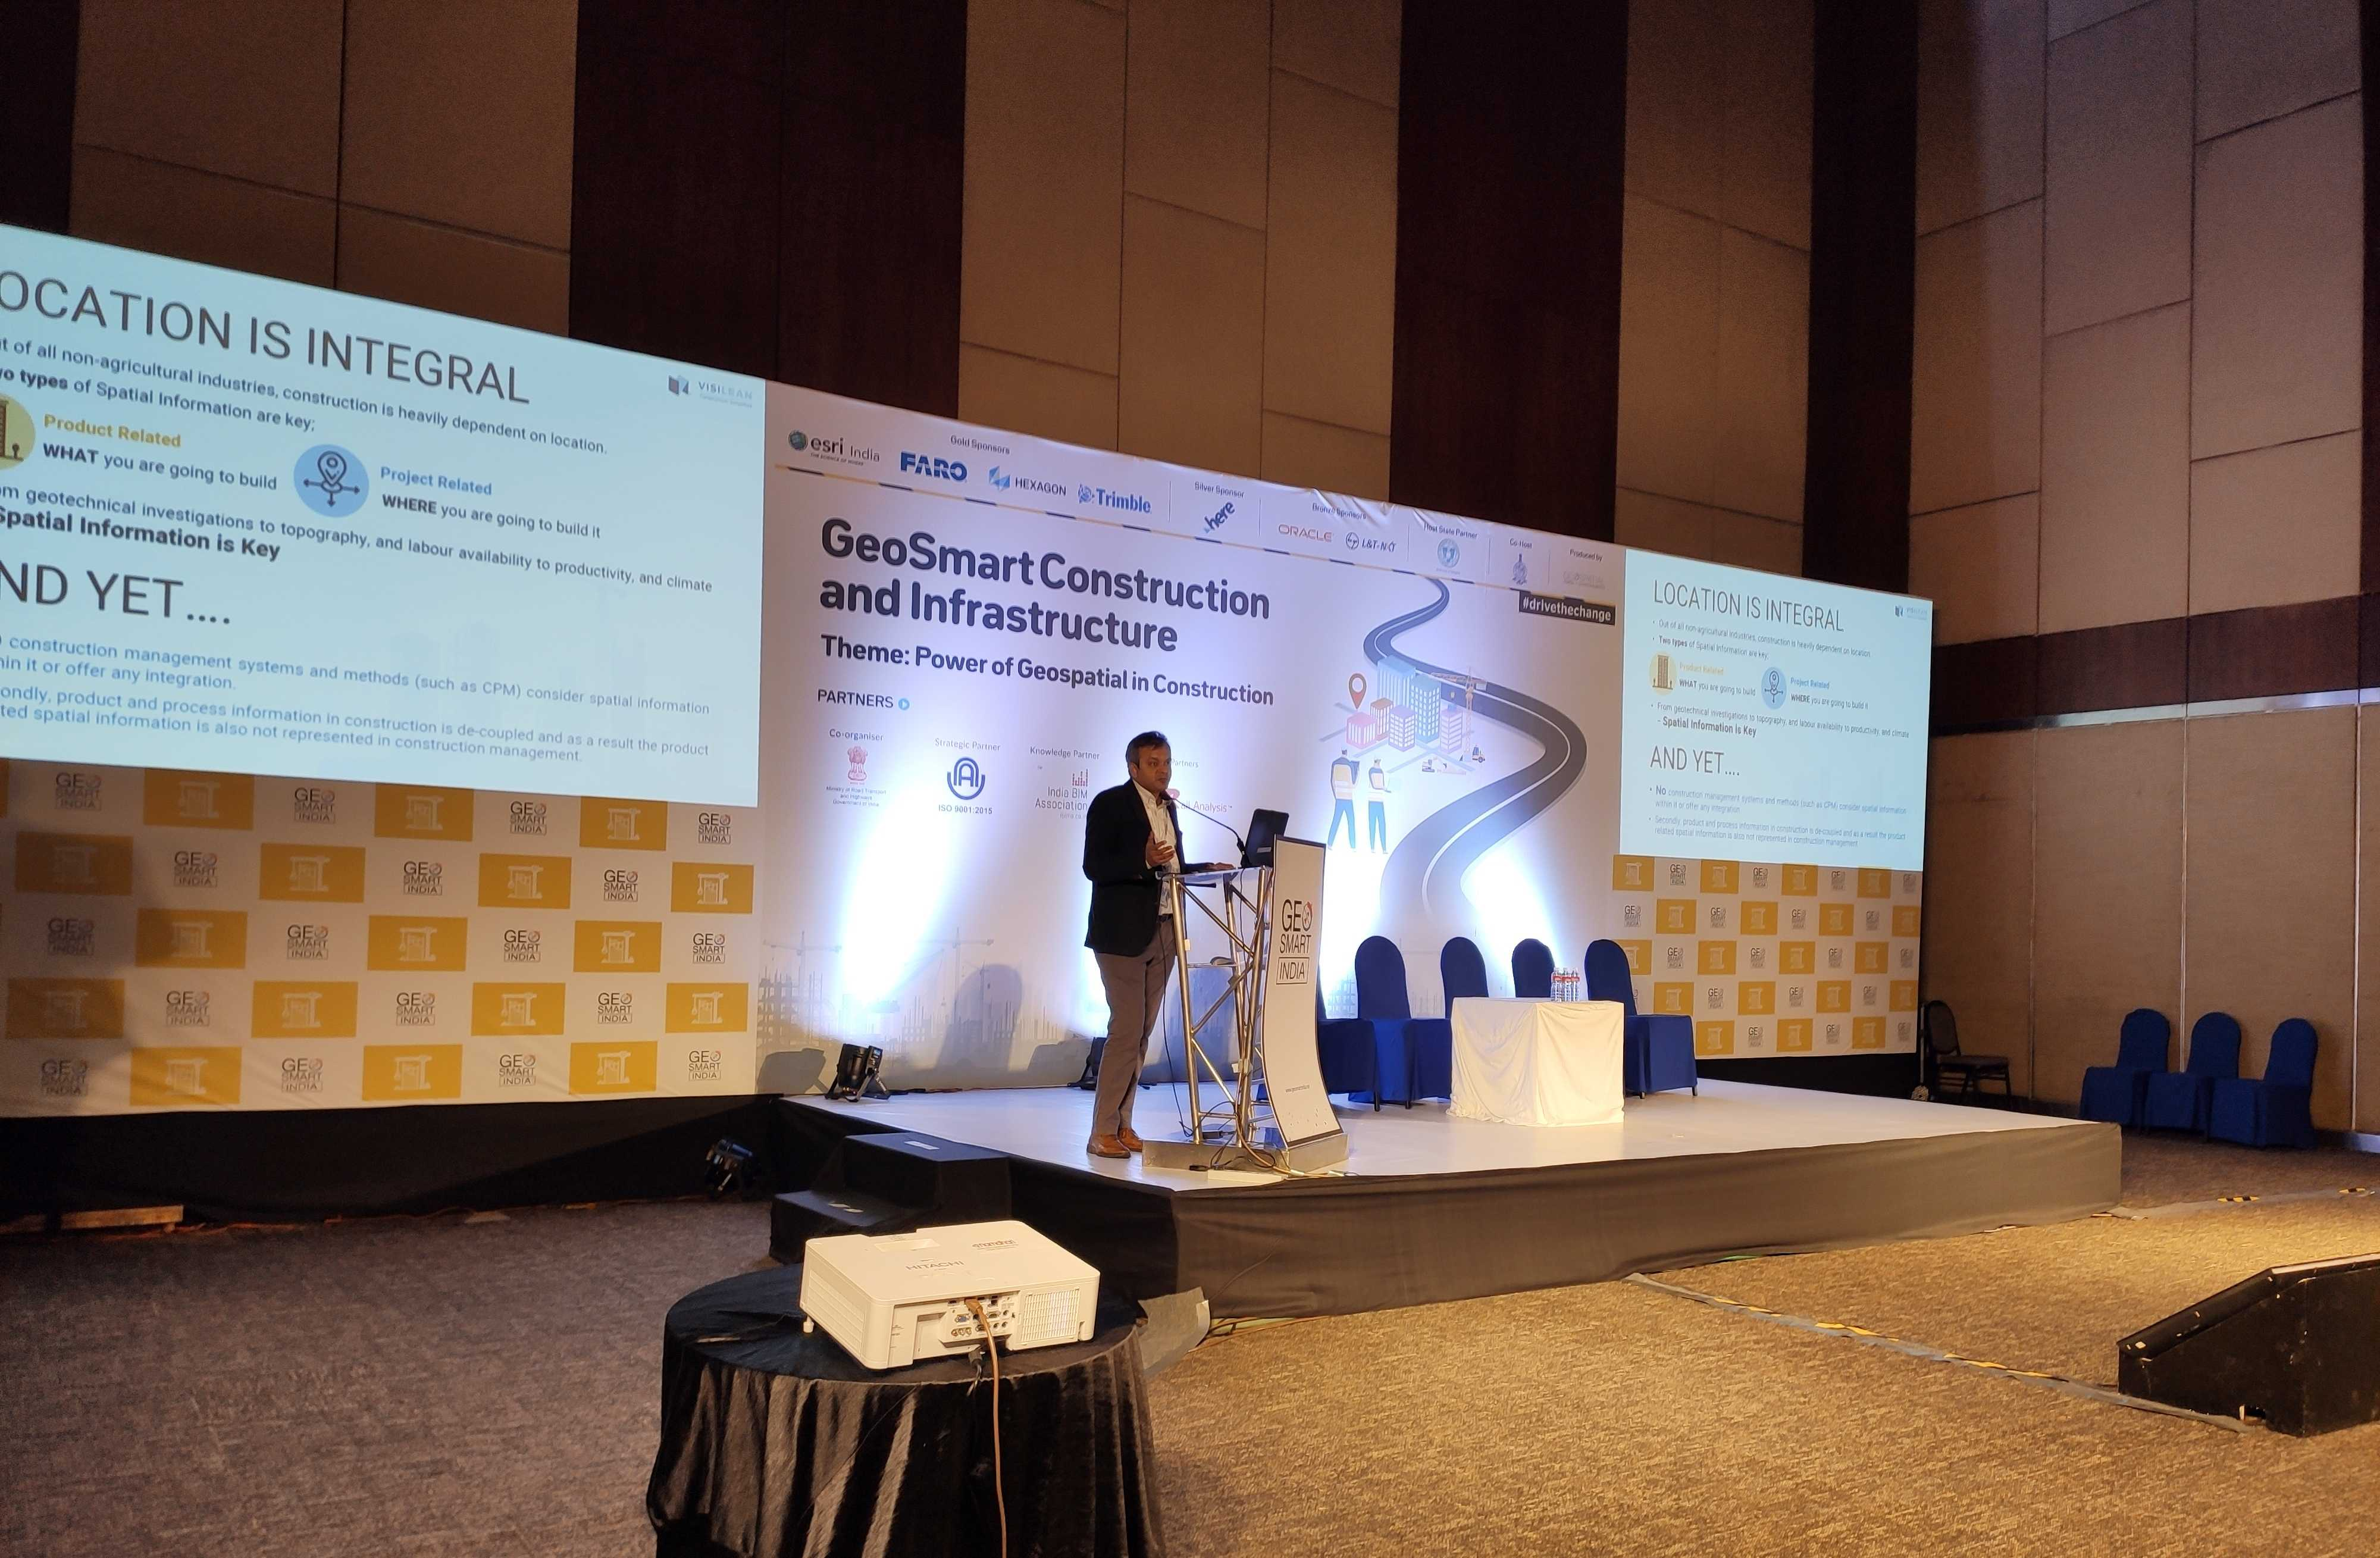 VisiLean CEO, Dr. Bhargav Dave at Geo smart construction and infrastructure